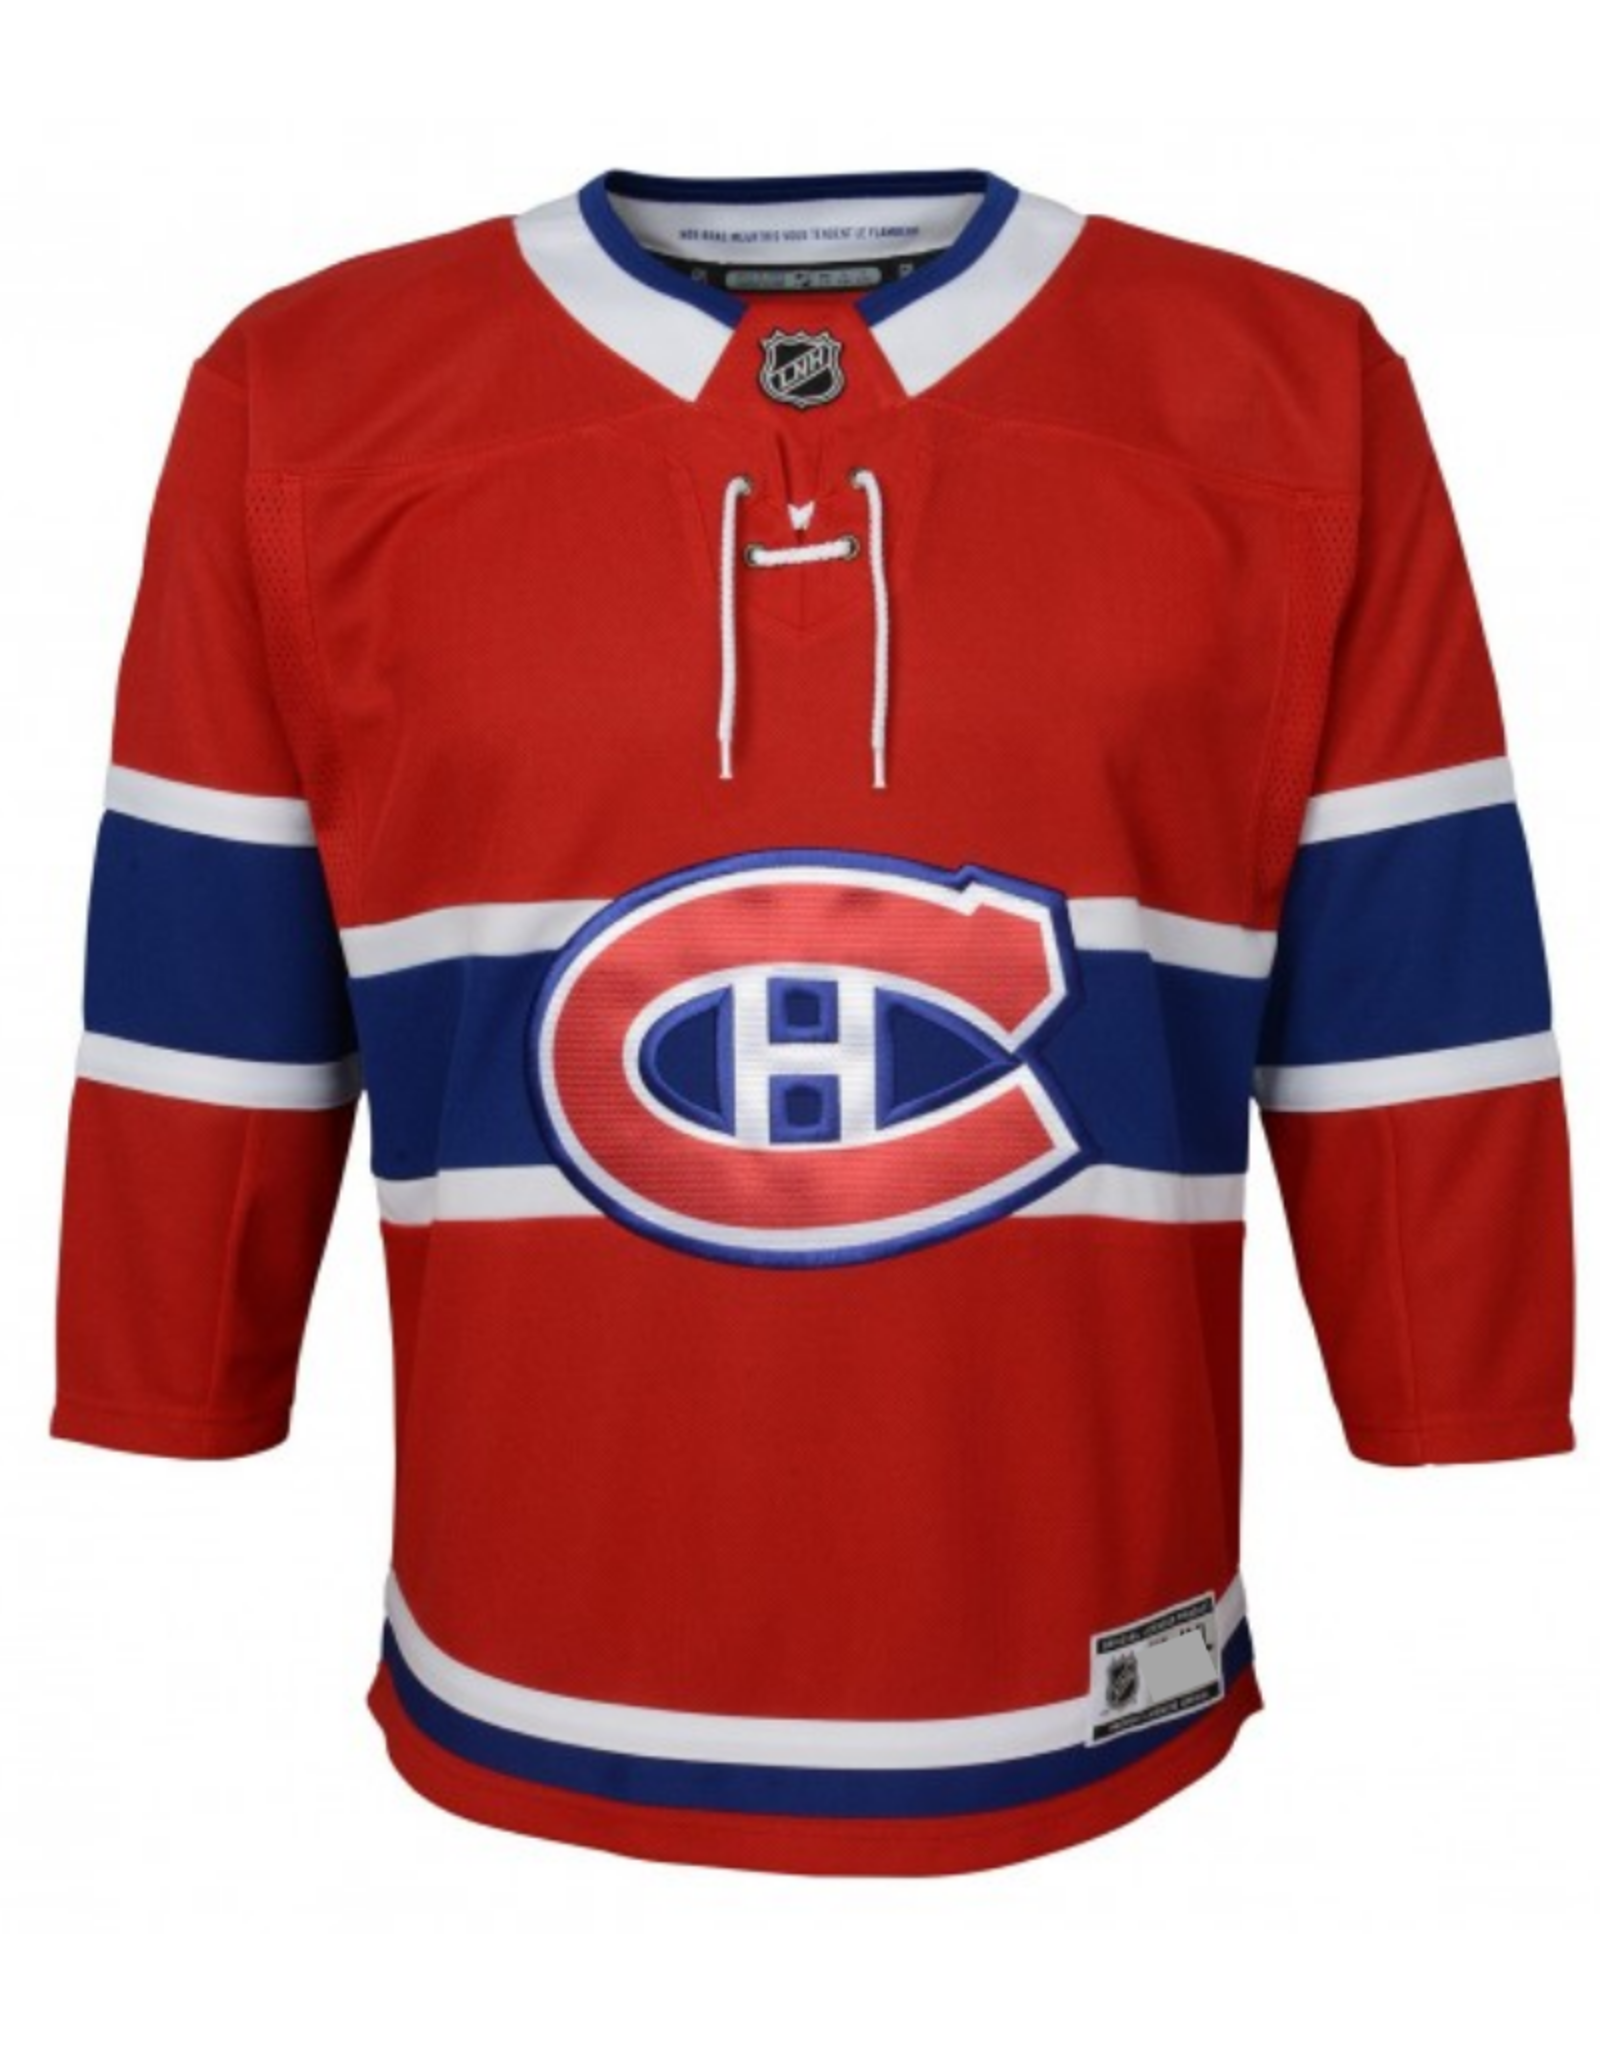 NHL Toddler Premier Carey Price #31 Jersey Montreal Canadiens 2-4T